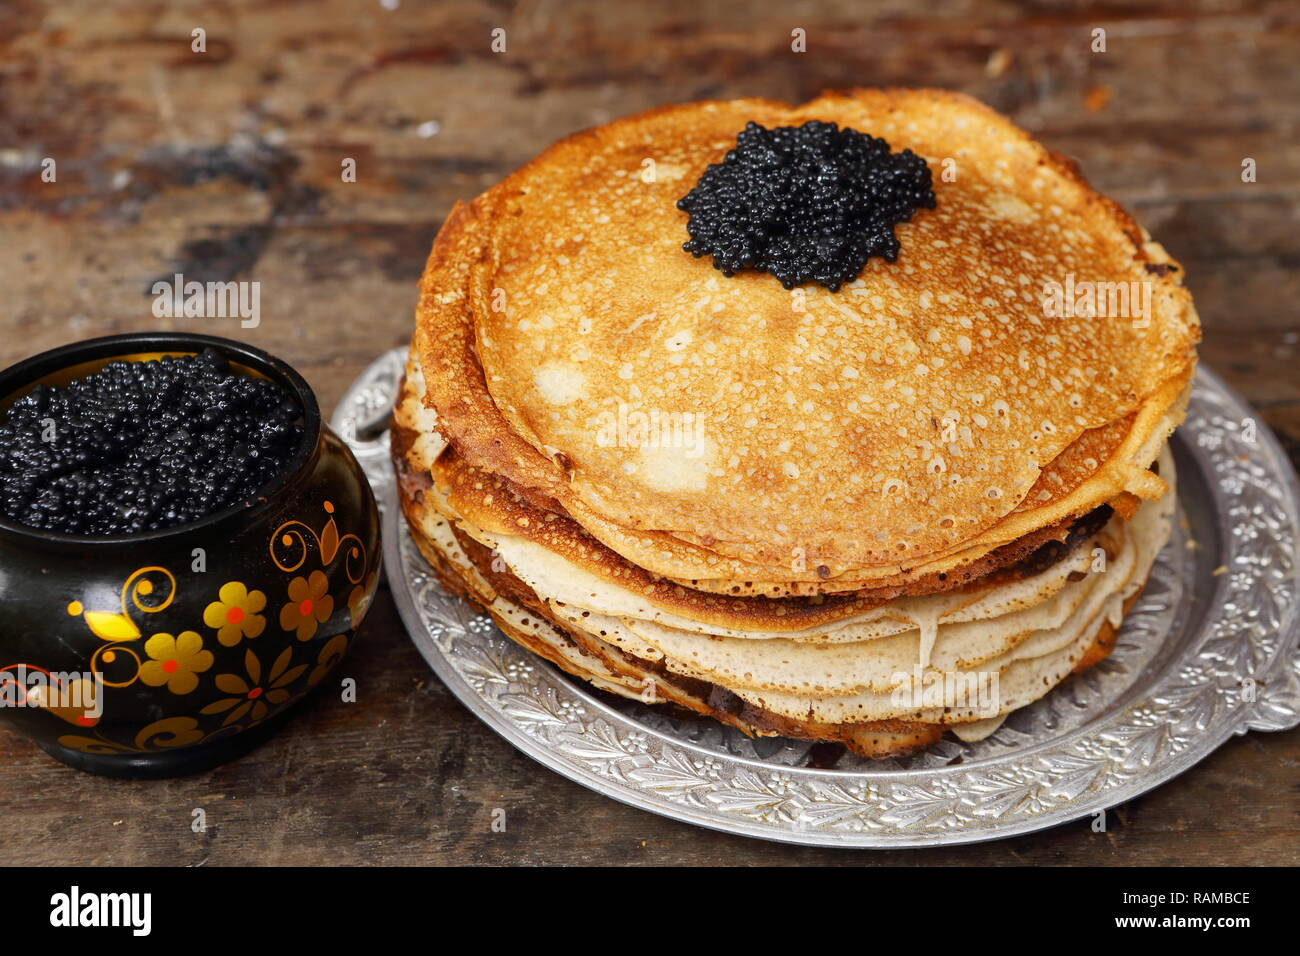 Still life with pancakes and black caviar on a wooden table - Stock Image